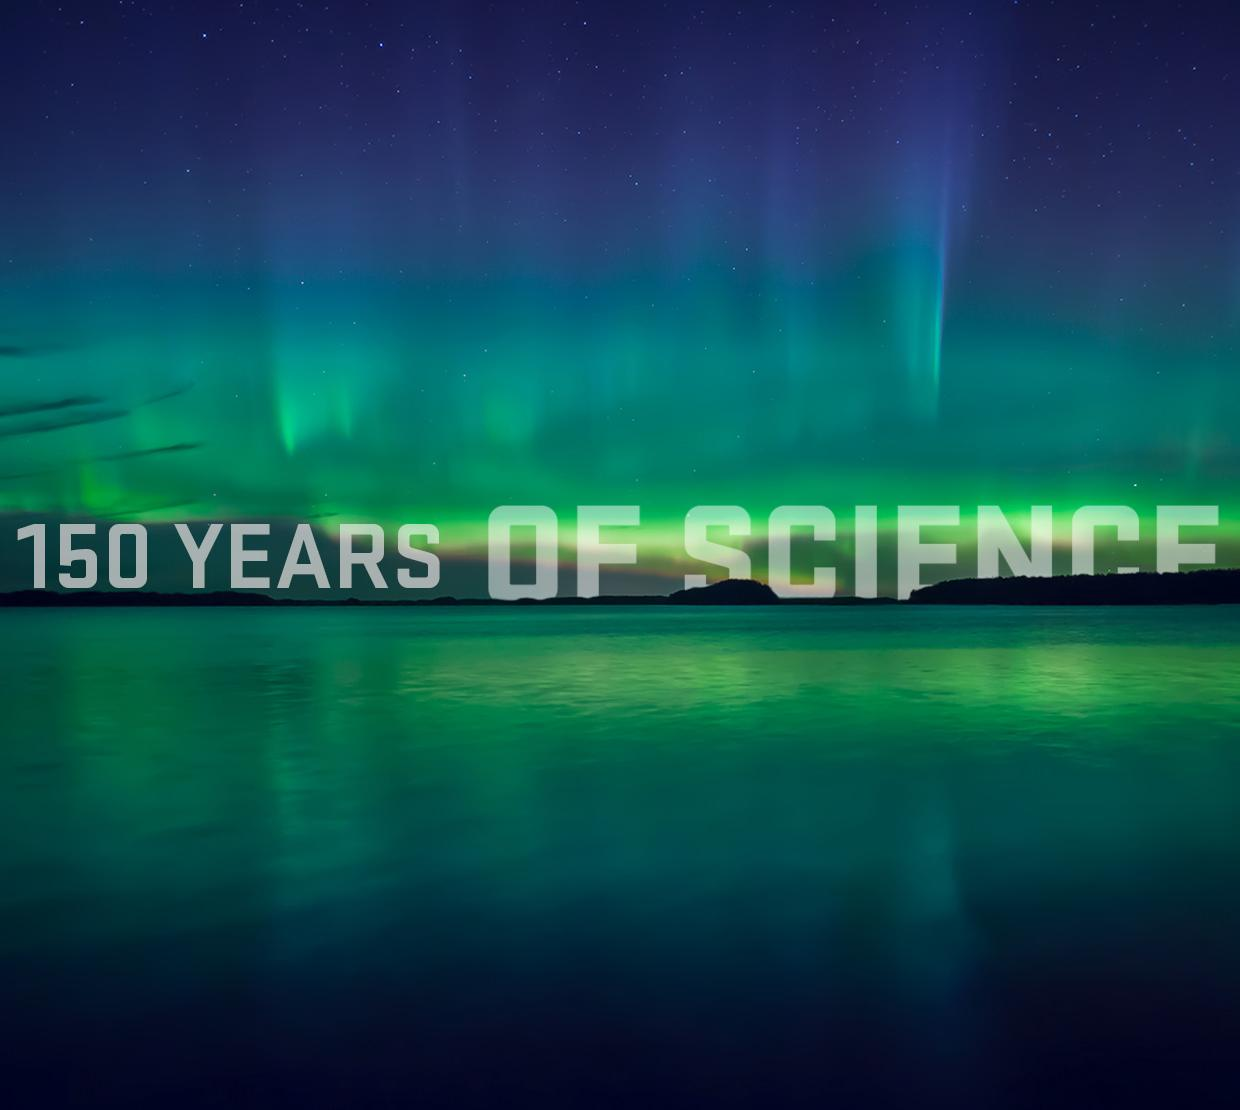 150 years of science title overlaying Northern lights and lake